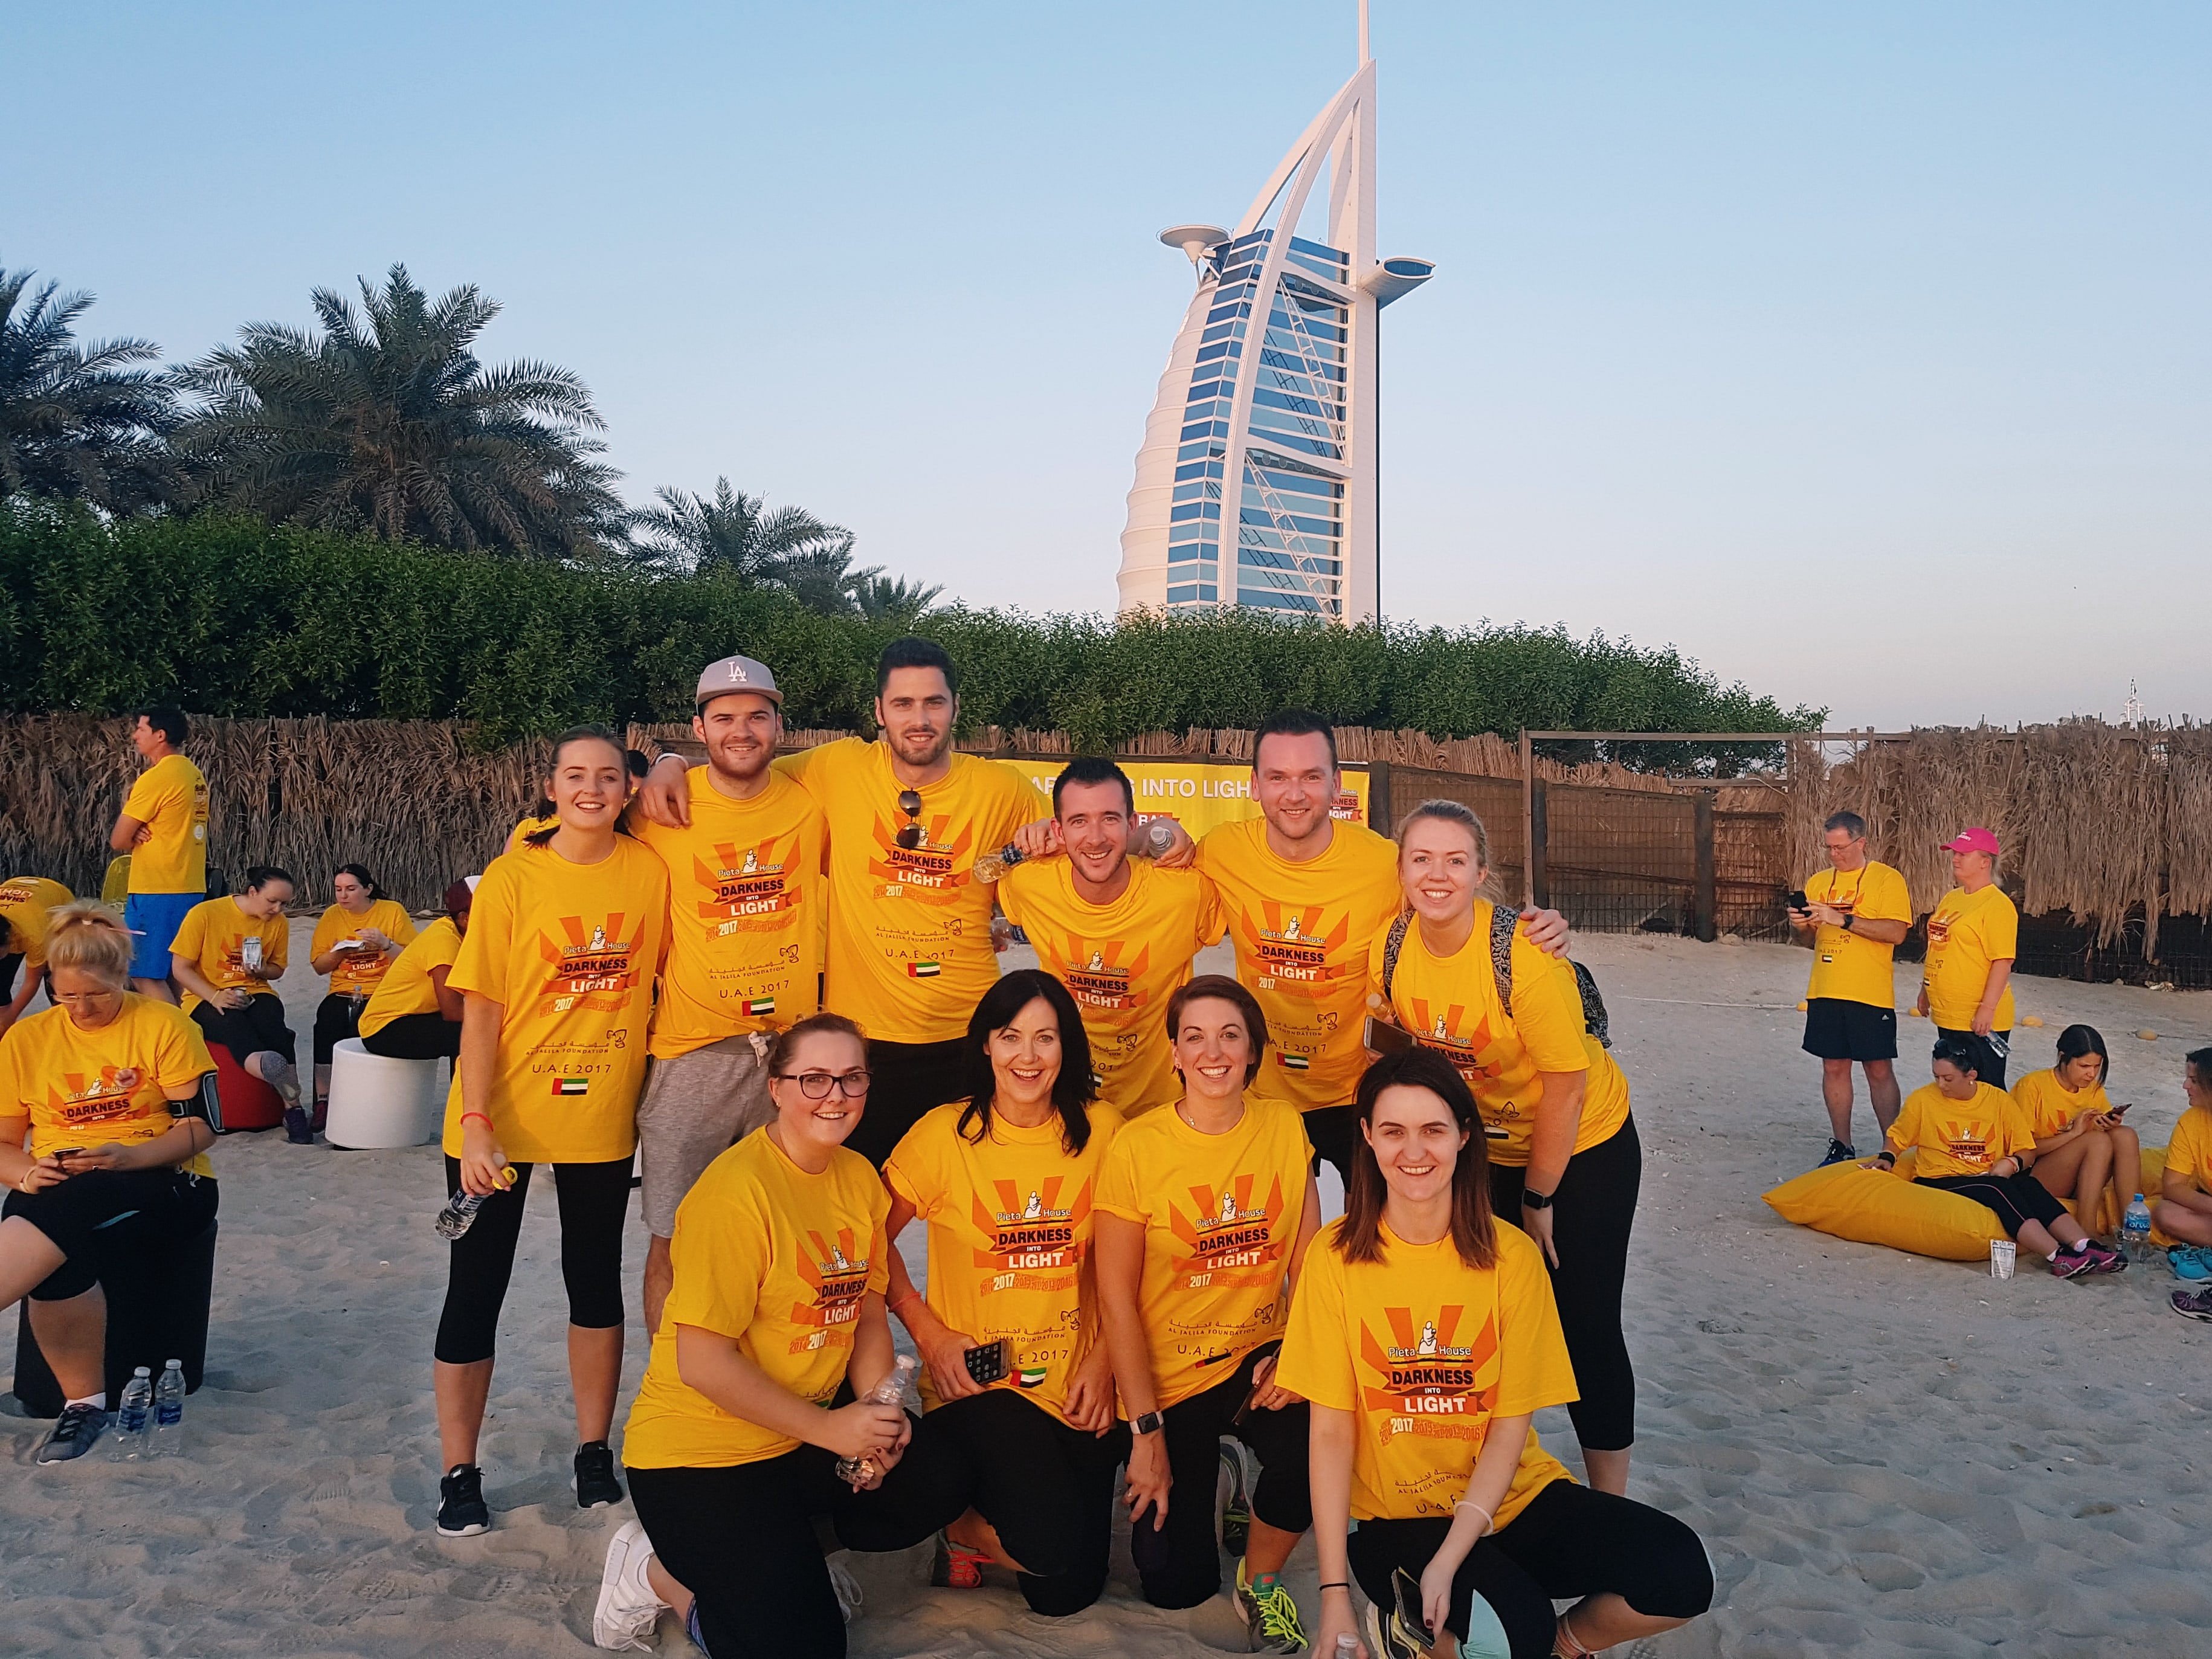 Group - Darkness into Light Walk